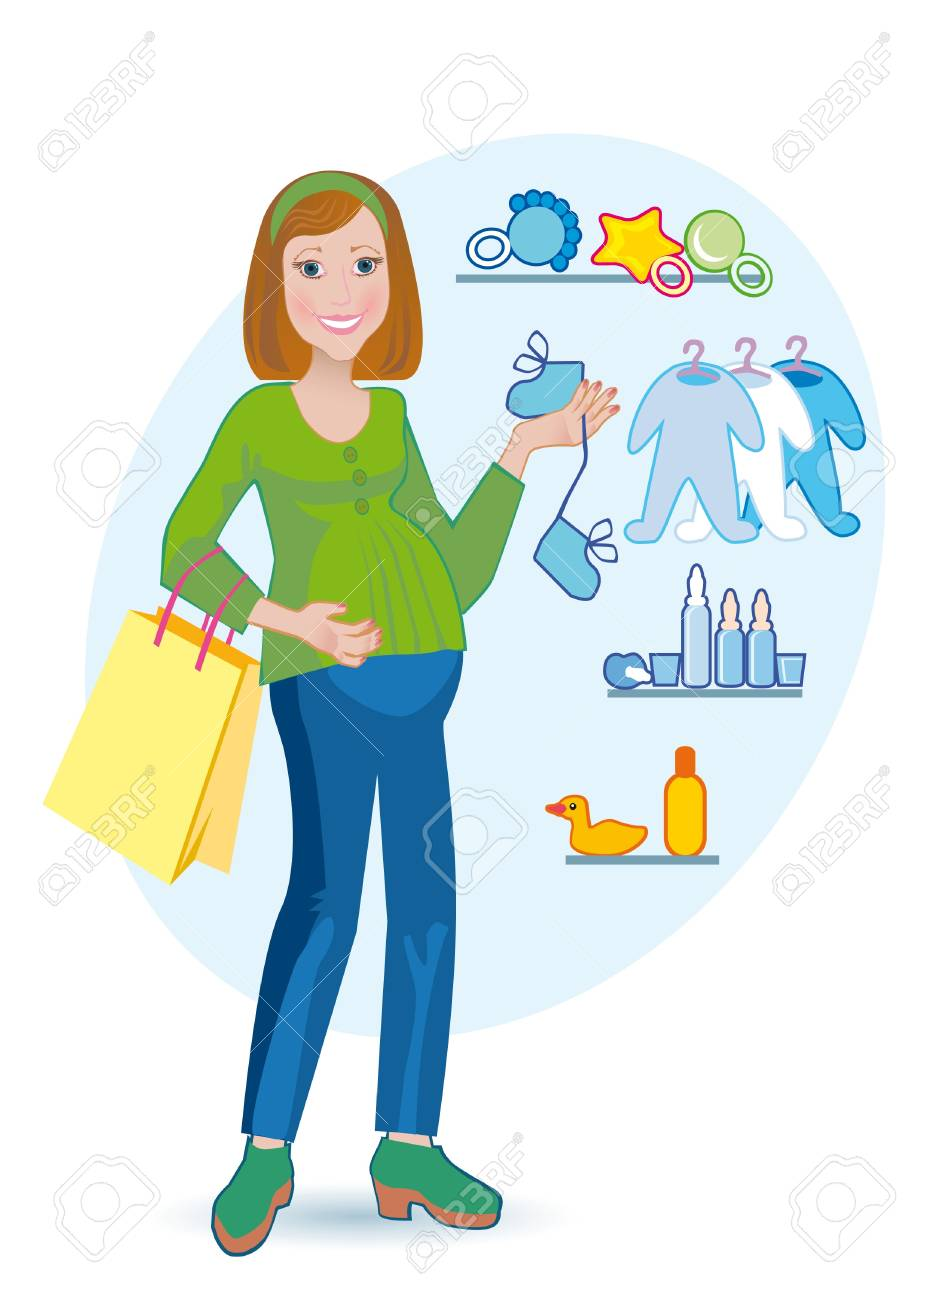 The pregnant goes out from child's shop Stock Photo - 12686168